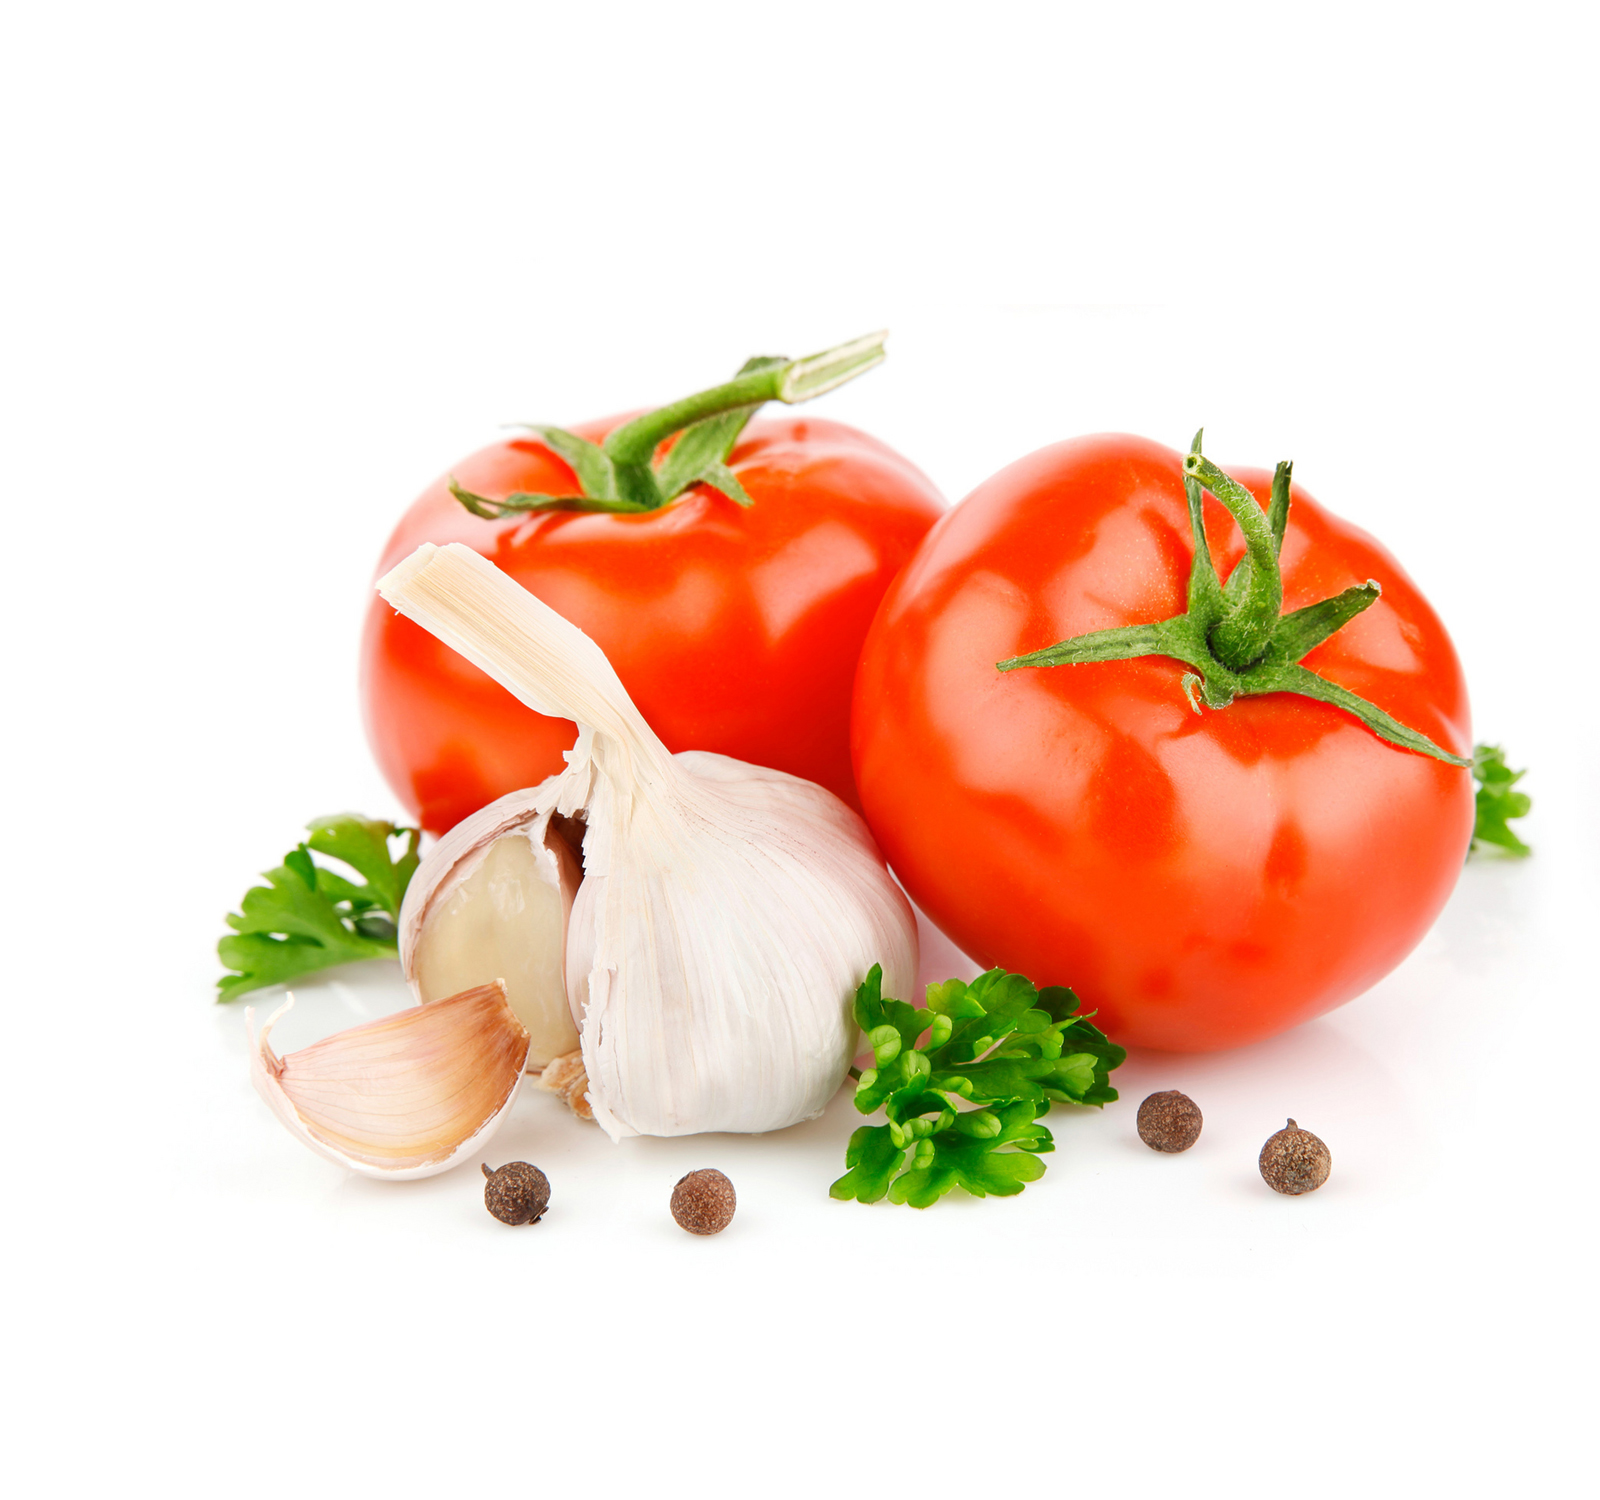 White Background Fruit and Vegetables 2 1600x1500